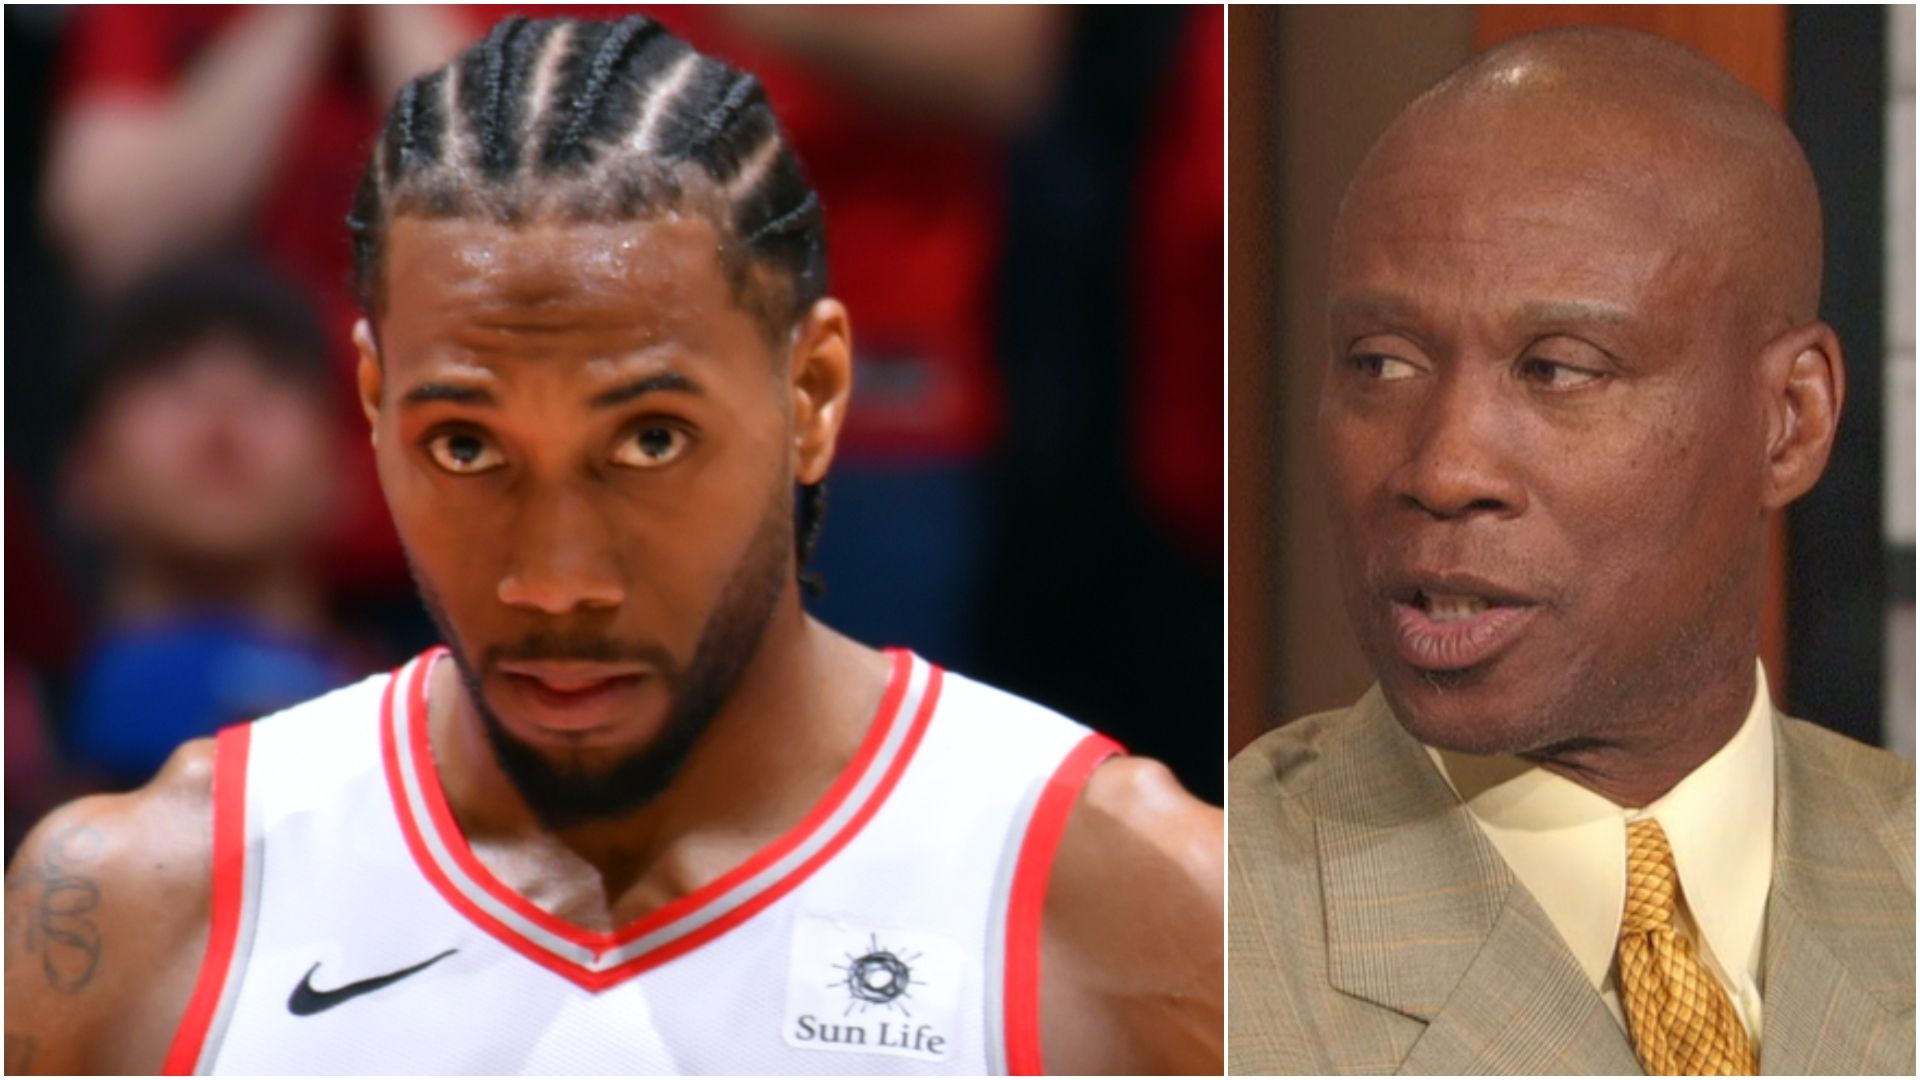 Scott is 'extremely concerned' about Kawhi's health